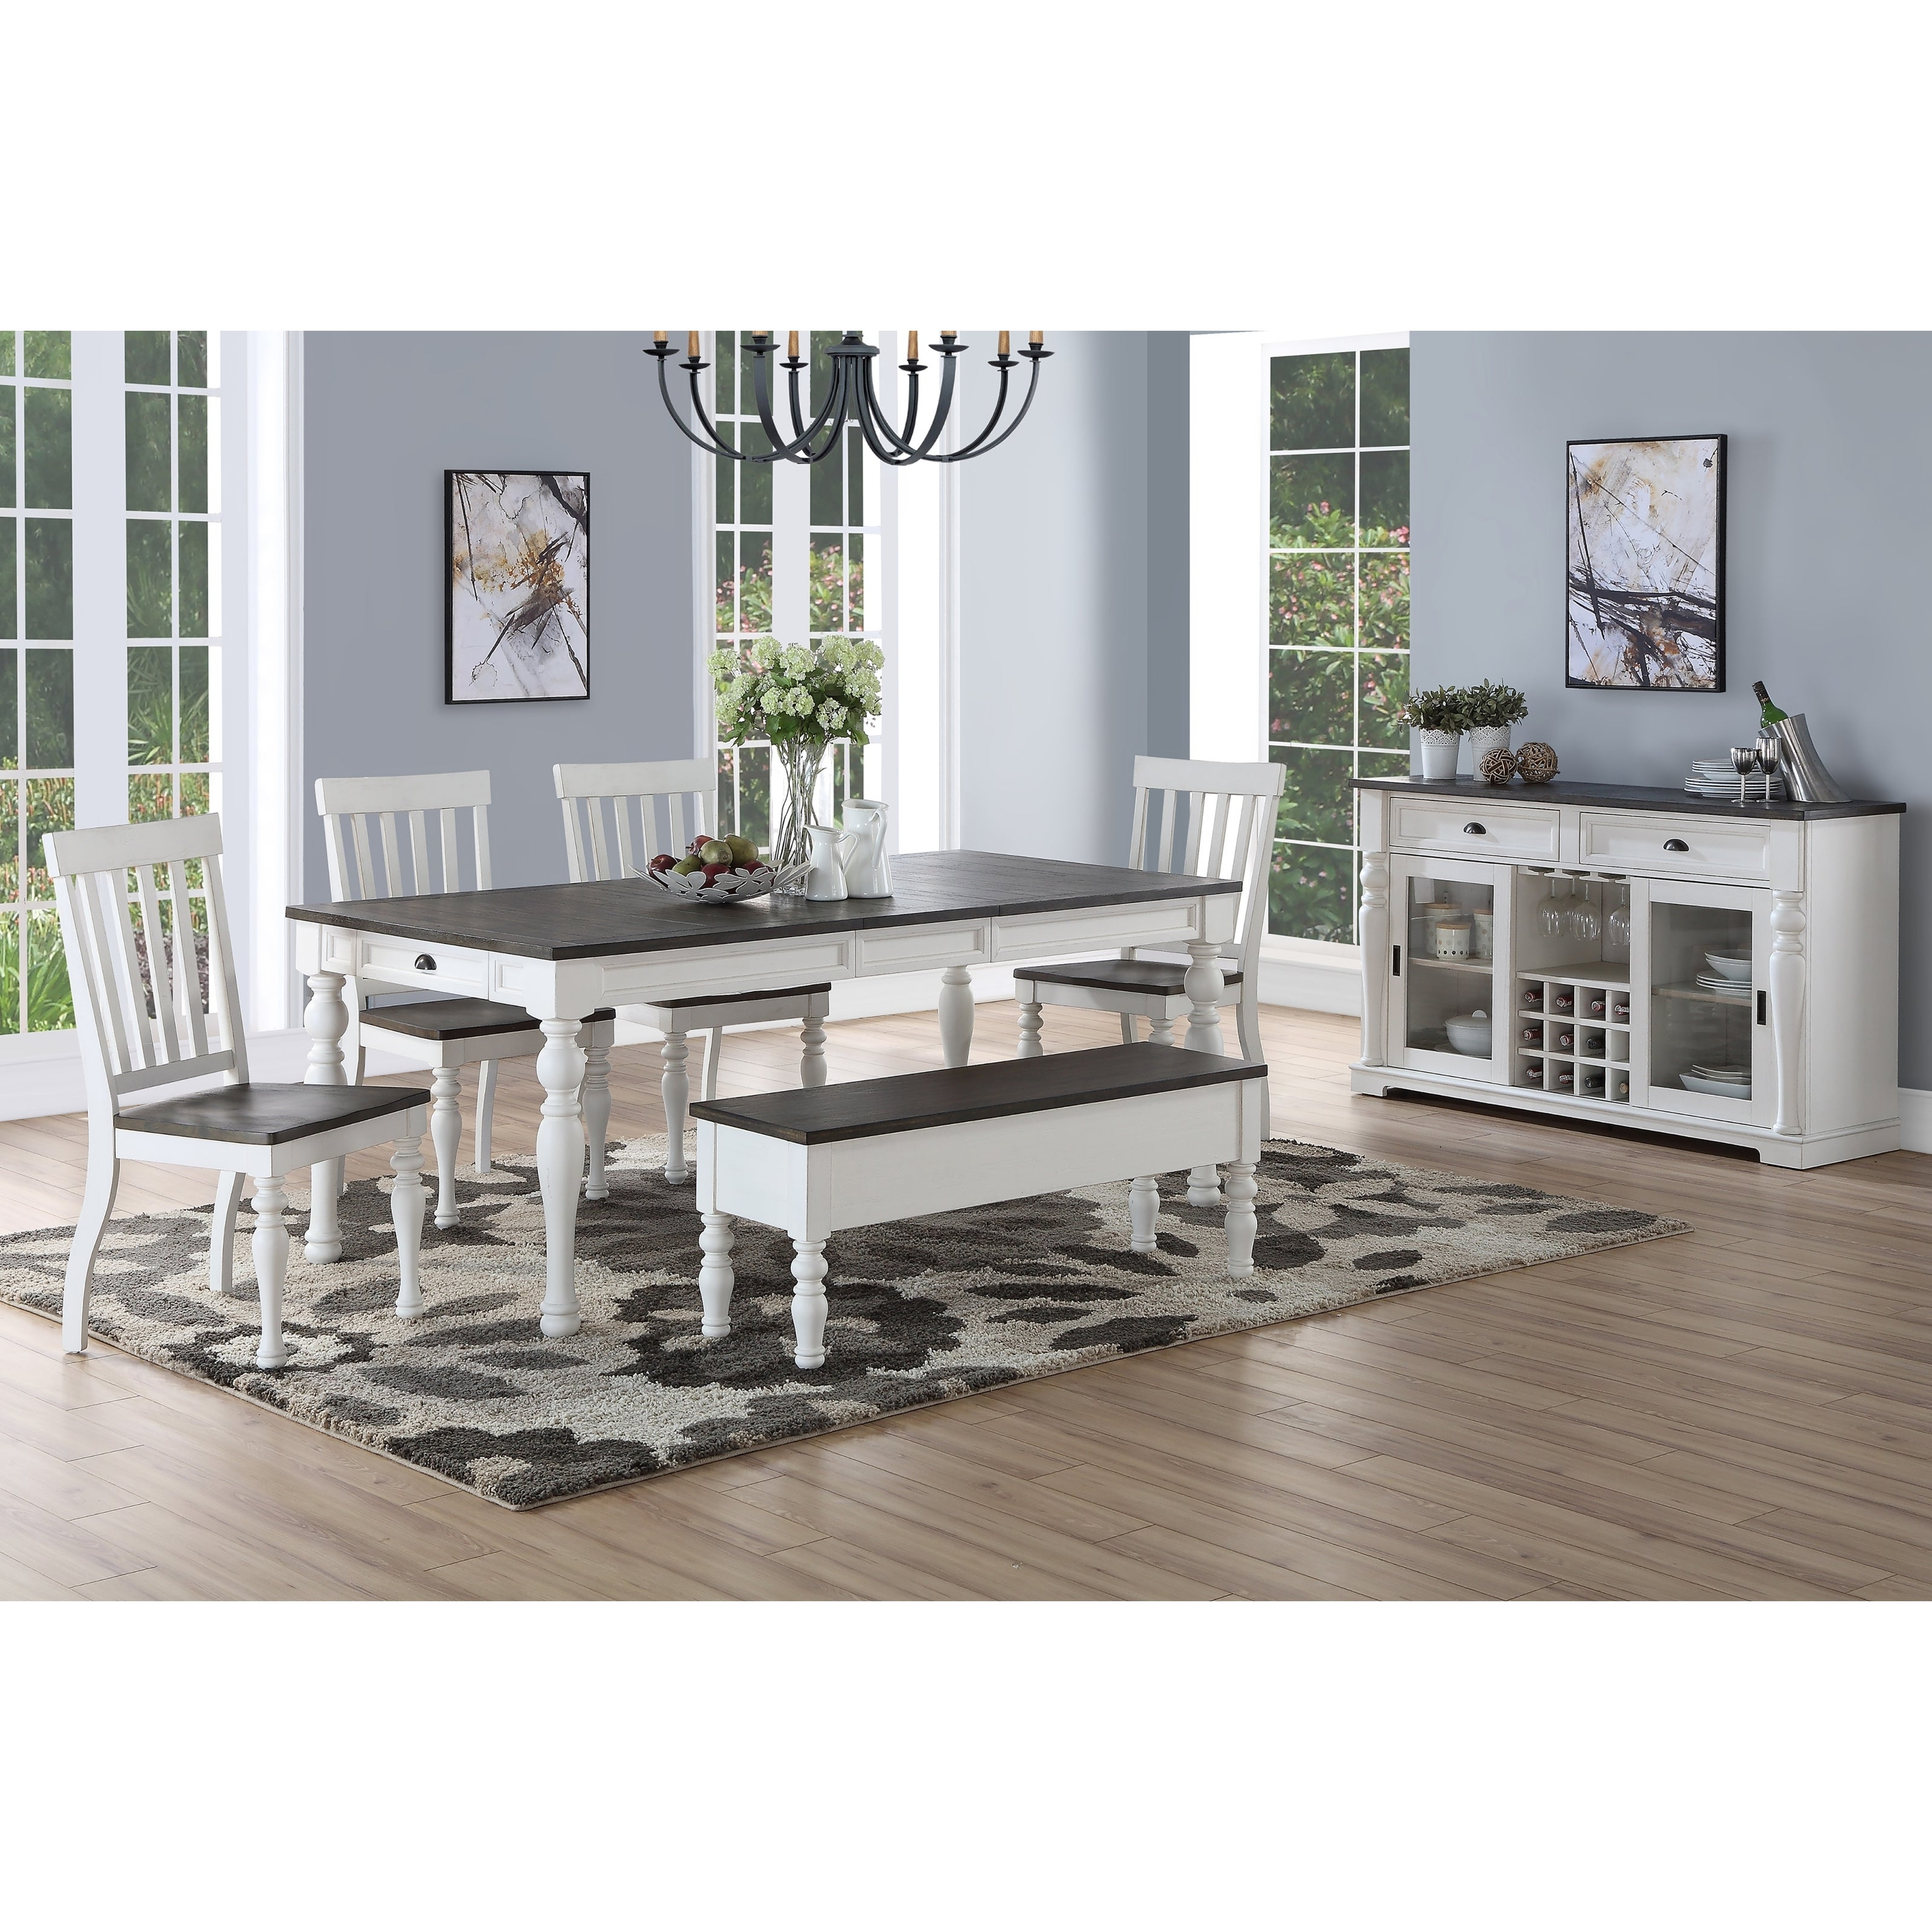 Preferred Falmer 3 Piece Solid Wood Dining Sets Throughout Buy Farmhouse Kitchen & Dining Room Sets Online At Overstock (View 18 of 25)